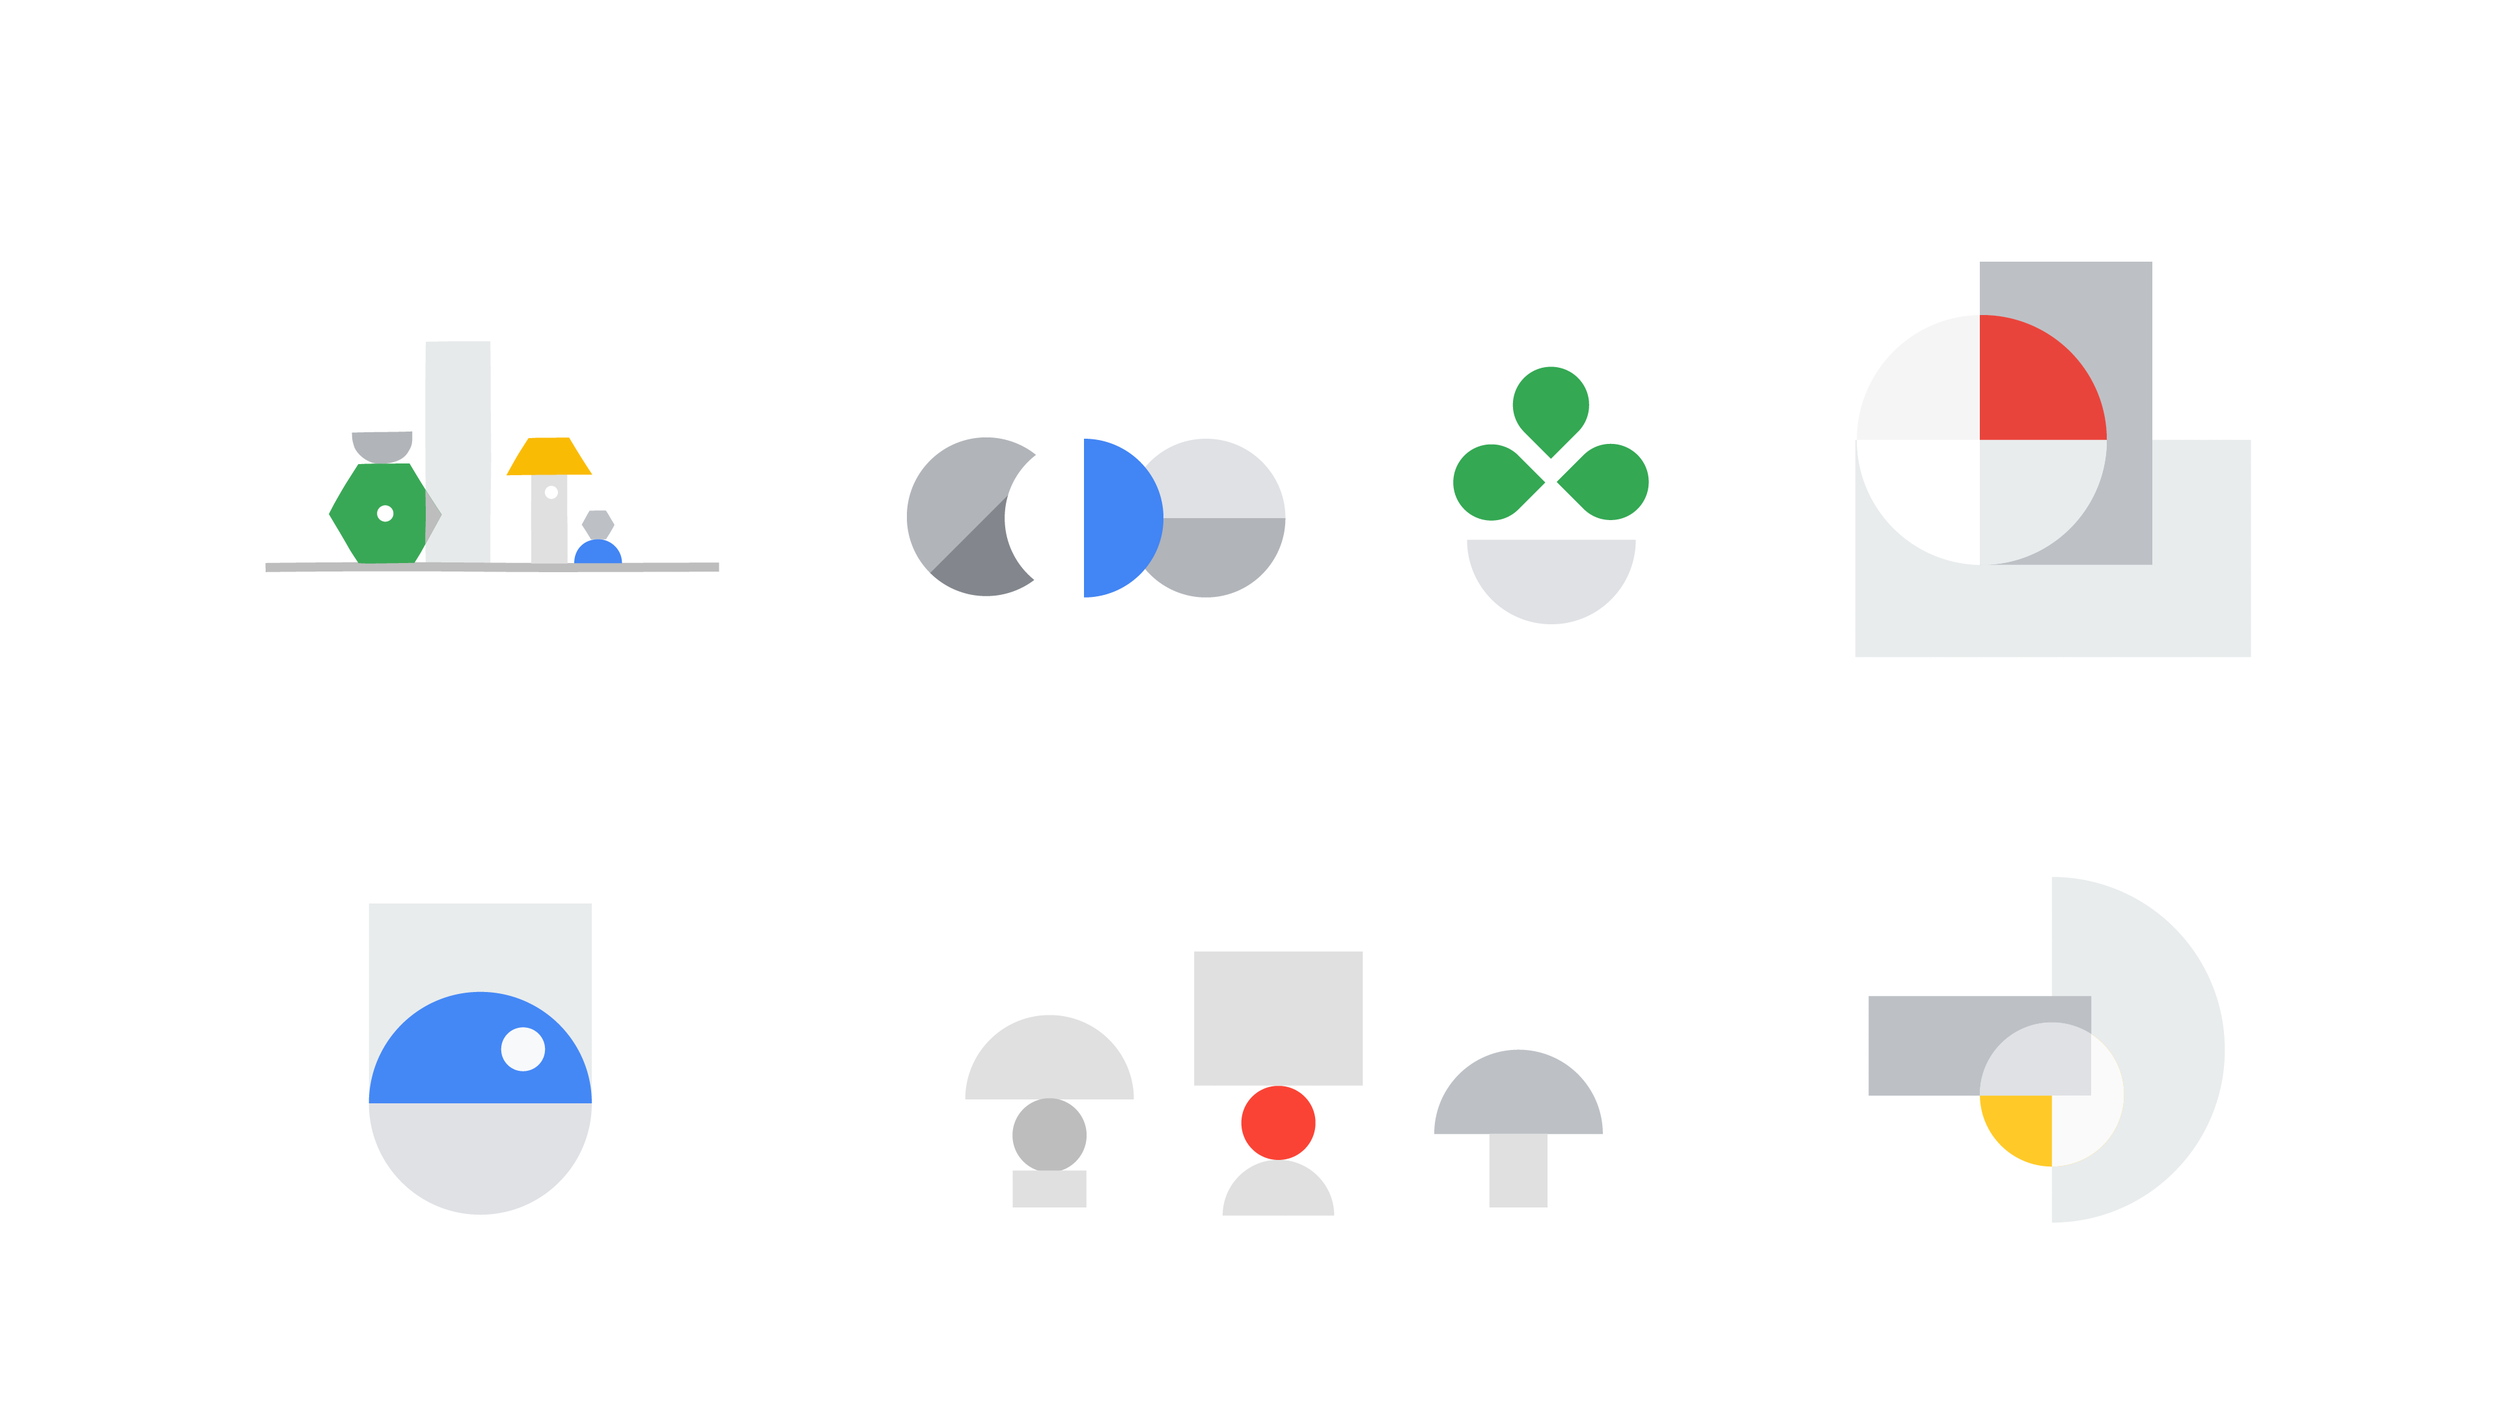 GoogleHome_CaseStudy_Design_6.png